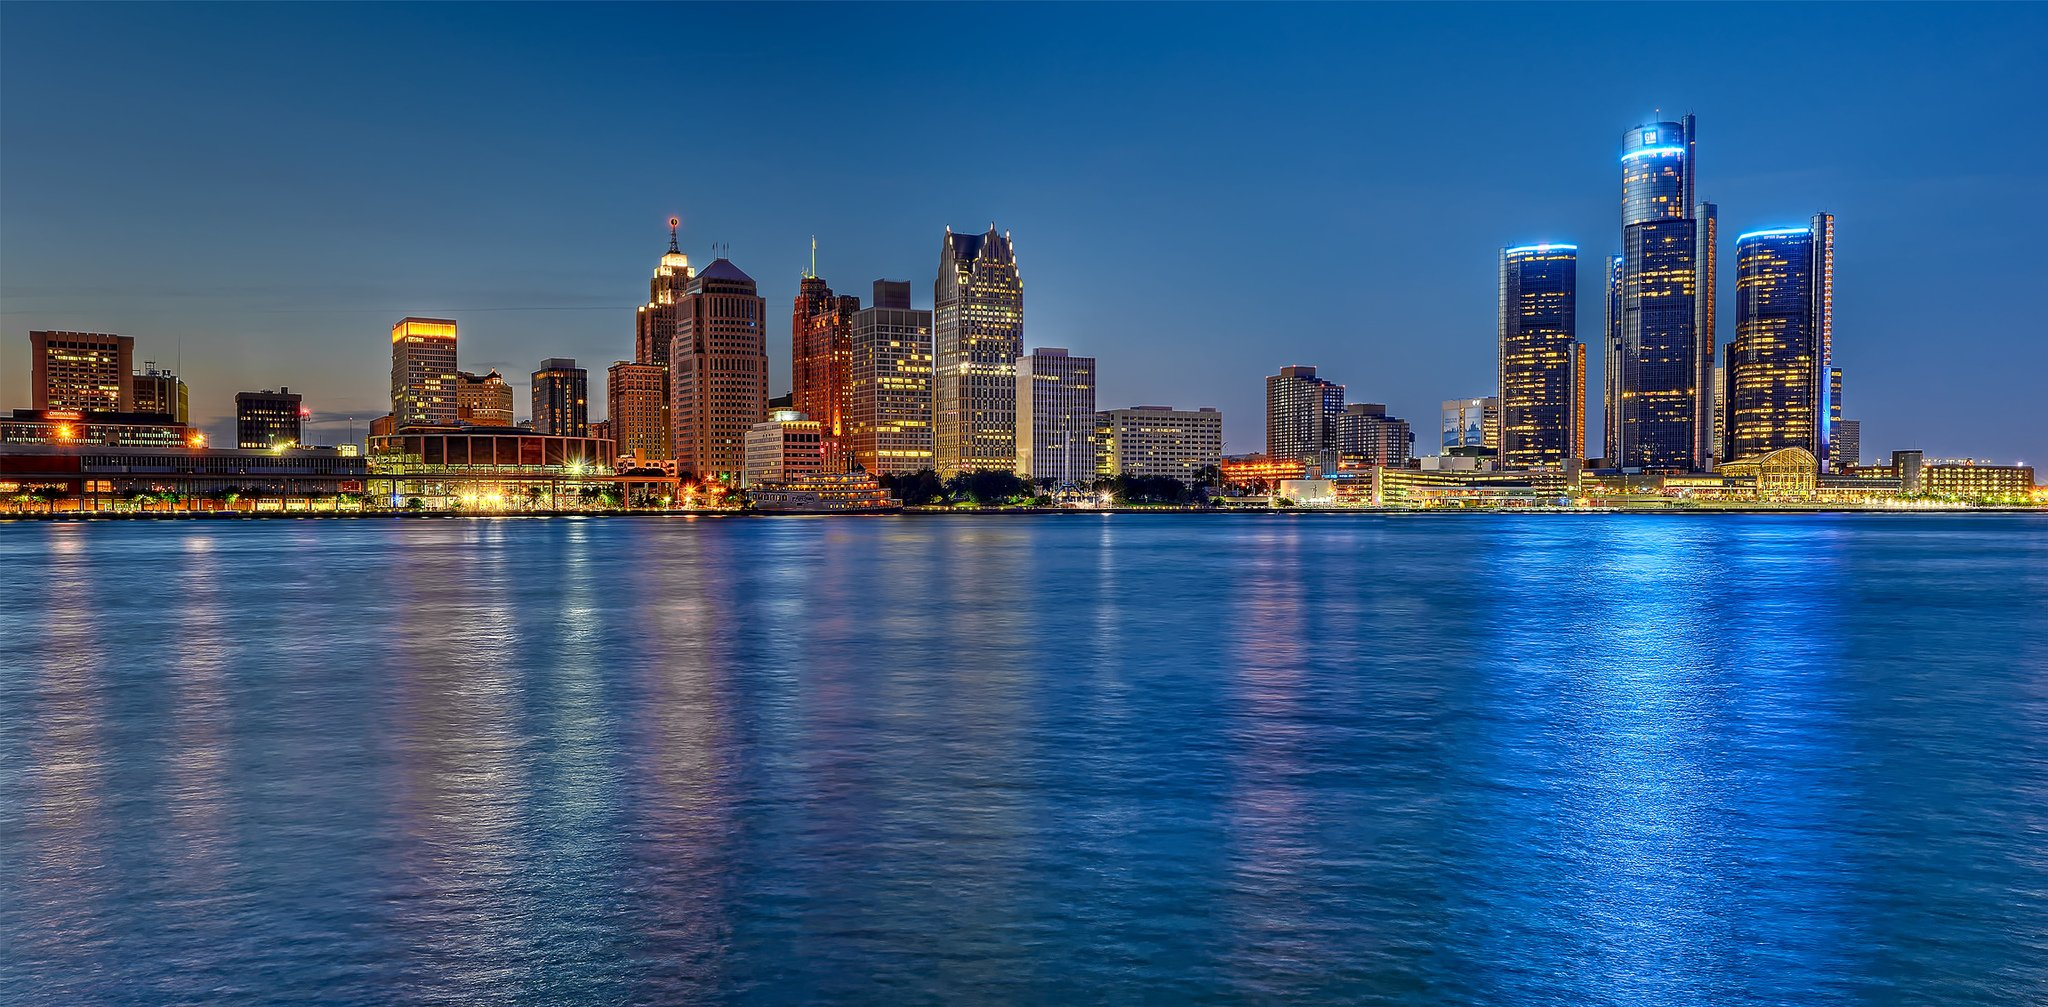 Sports News Articles Scores, Pictures, Videos - ABC Pictures of detroit skyline at night